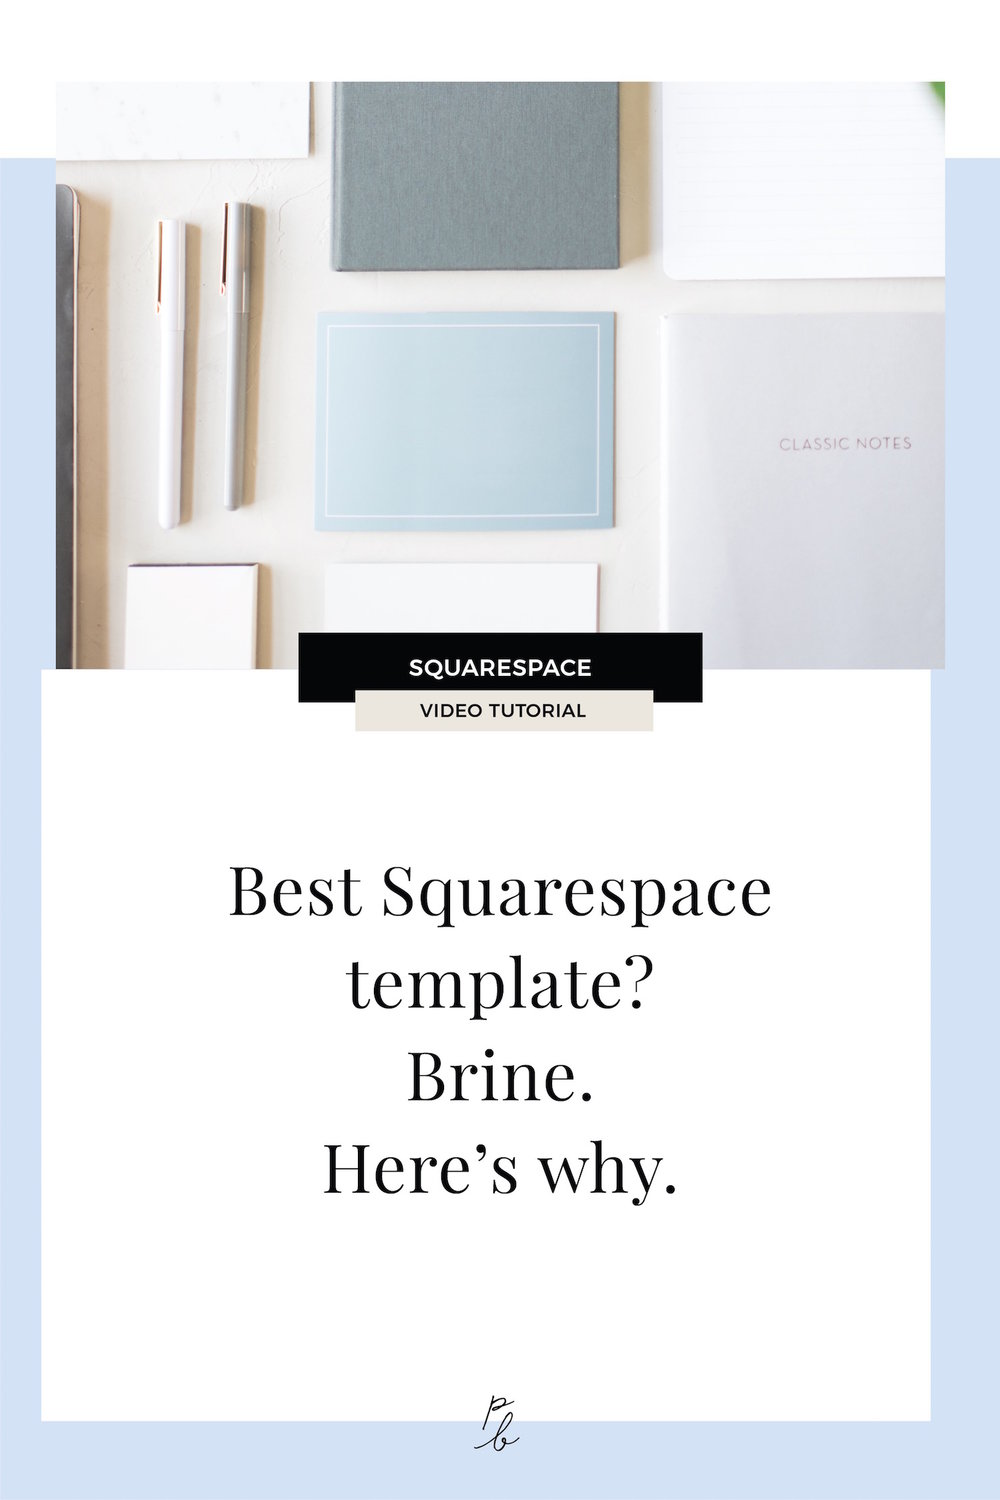 what is the best squarespace template brine here s why paige